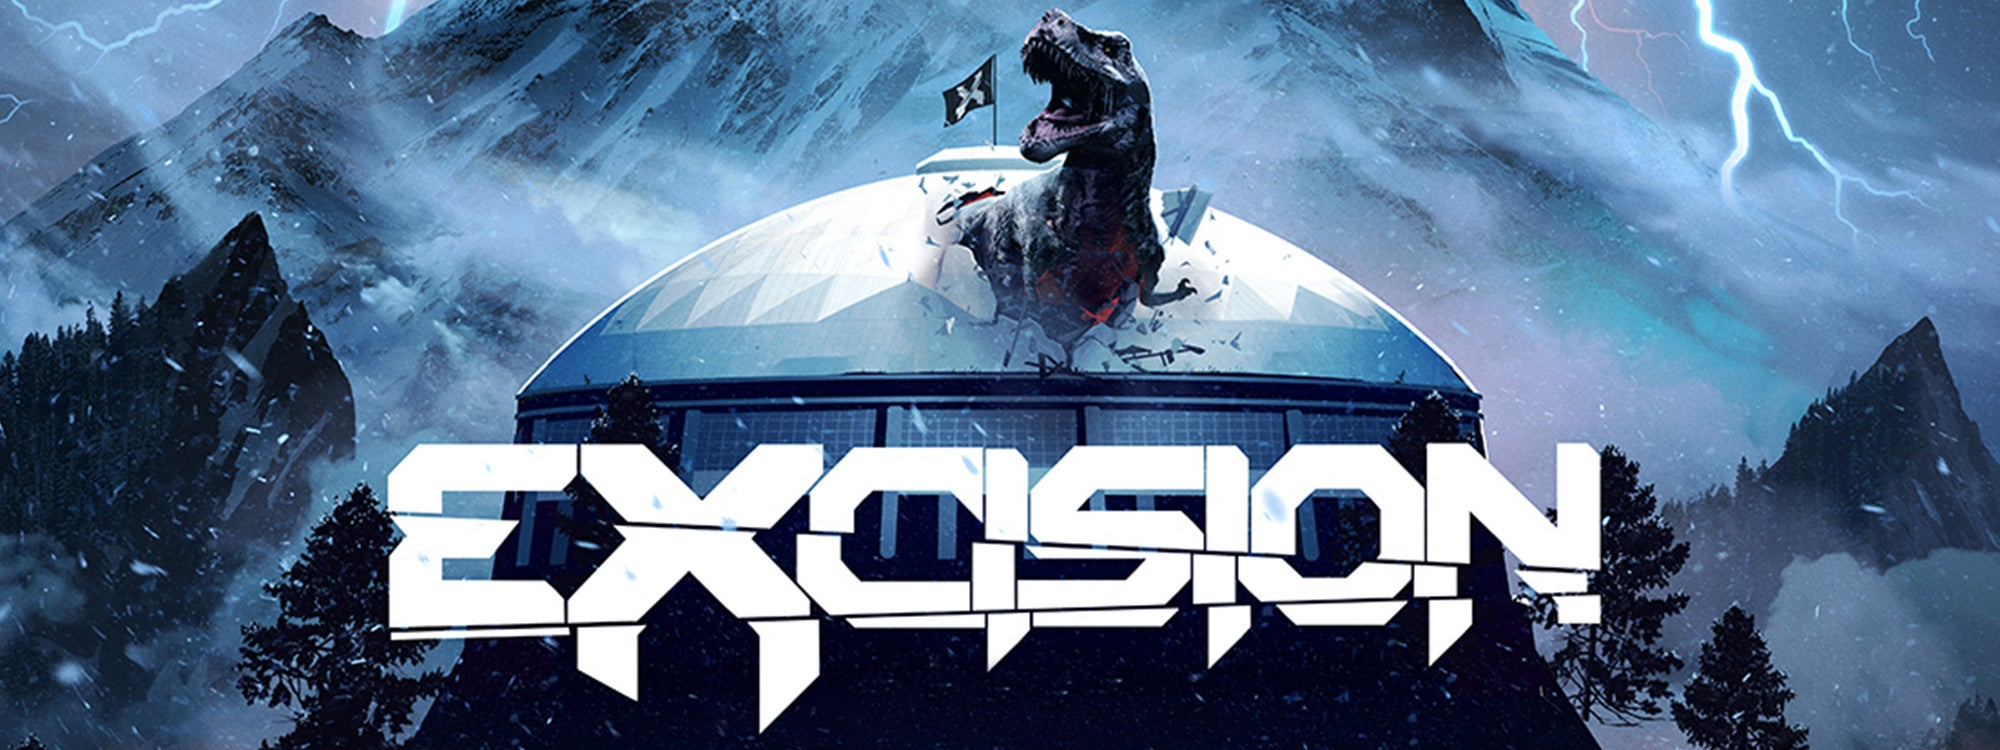 Excision Tour Dates 2020 Excision | Tacoma Dome